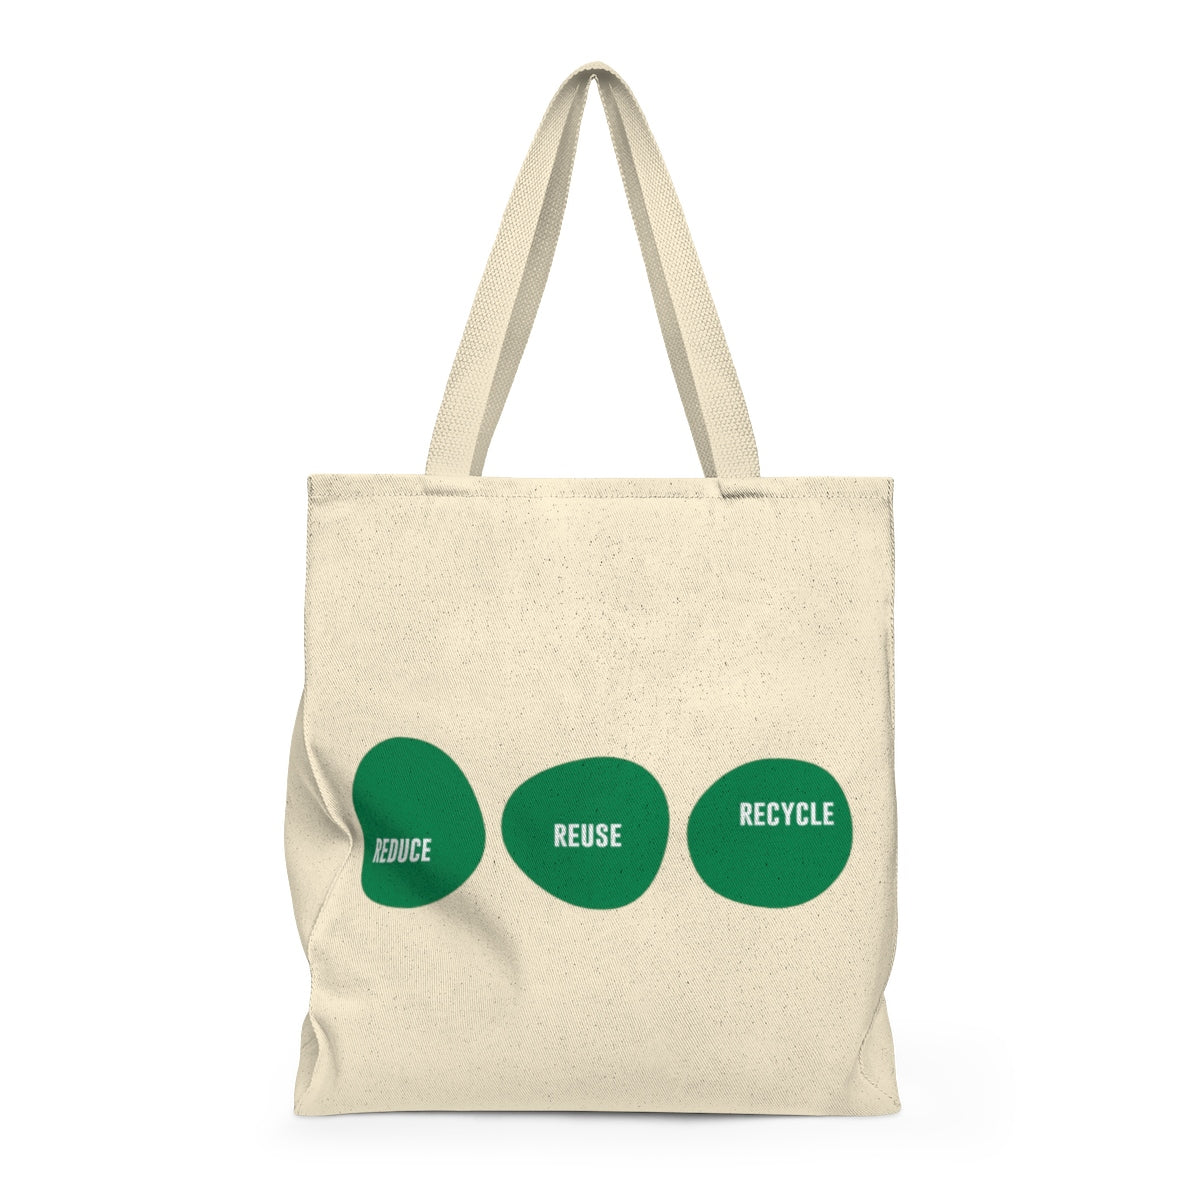 Reduce Reuse Recycle Tote & Reusable Grocery Bag (Original)